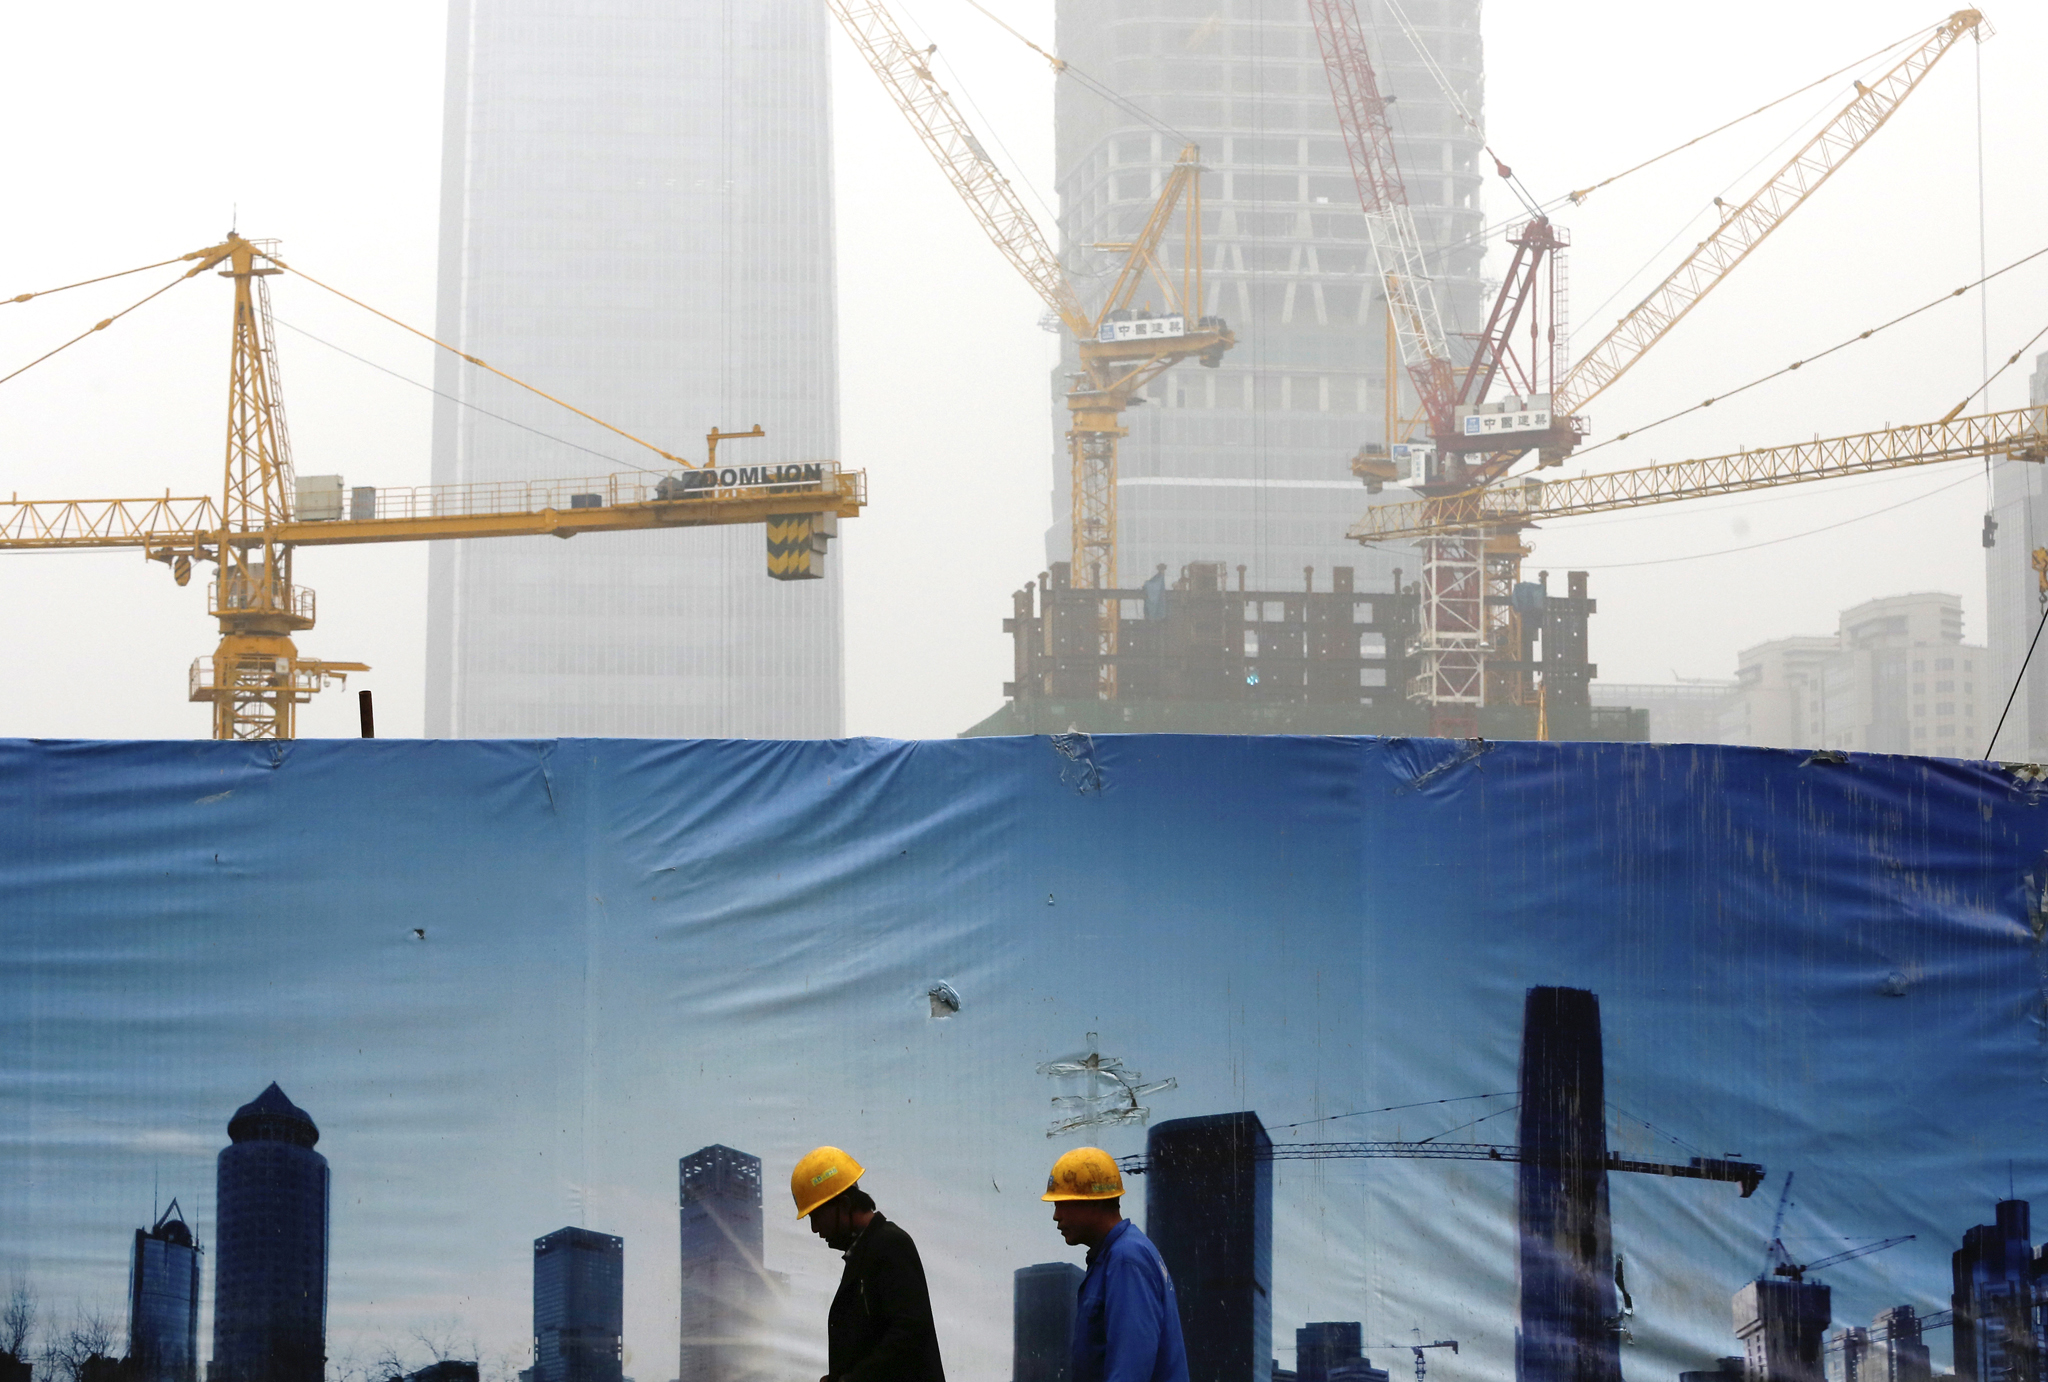 Workers walk past a billboard display showing a scene of Central Business District, as capital city skylines are shrouded with pollutant haze in Beijing, China, Monday, Nov. 9, 2015. Heading into this month's Paris meeting, the world's biggest source of climate-changing gases has yet to accept binding limits. But it has invested in solar, wind and hydro power to clean up its smog-choked cities and curb surging demand for imported oil and gas. That contributed last year to a surprise fall in coal consumption. (AP Photo/Andy Wong)